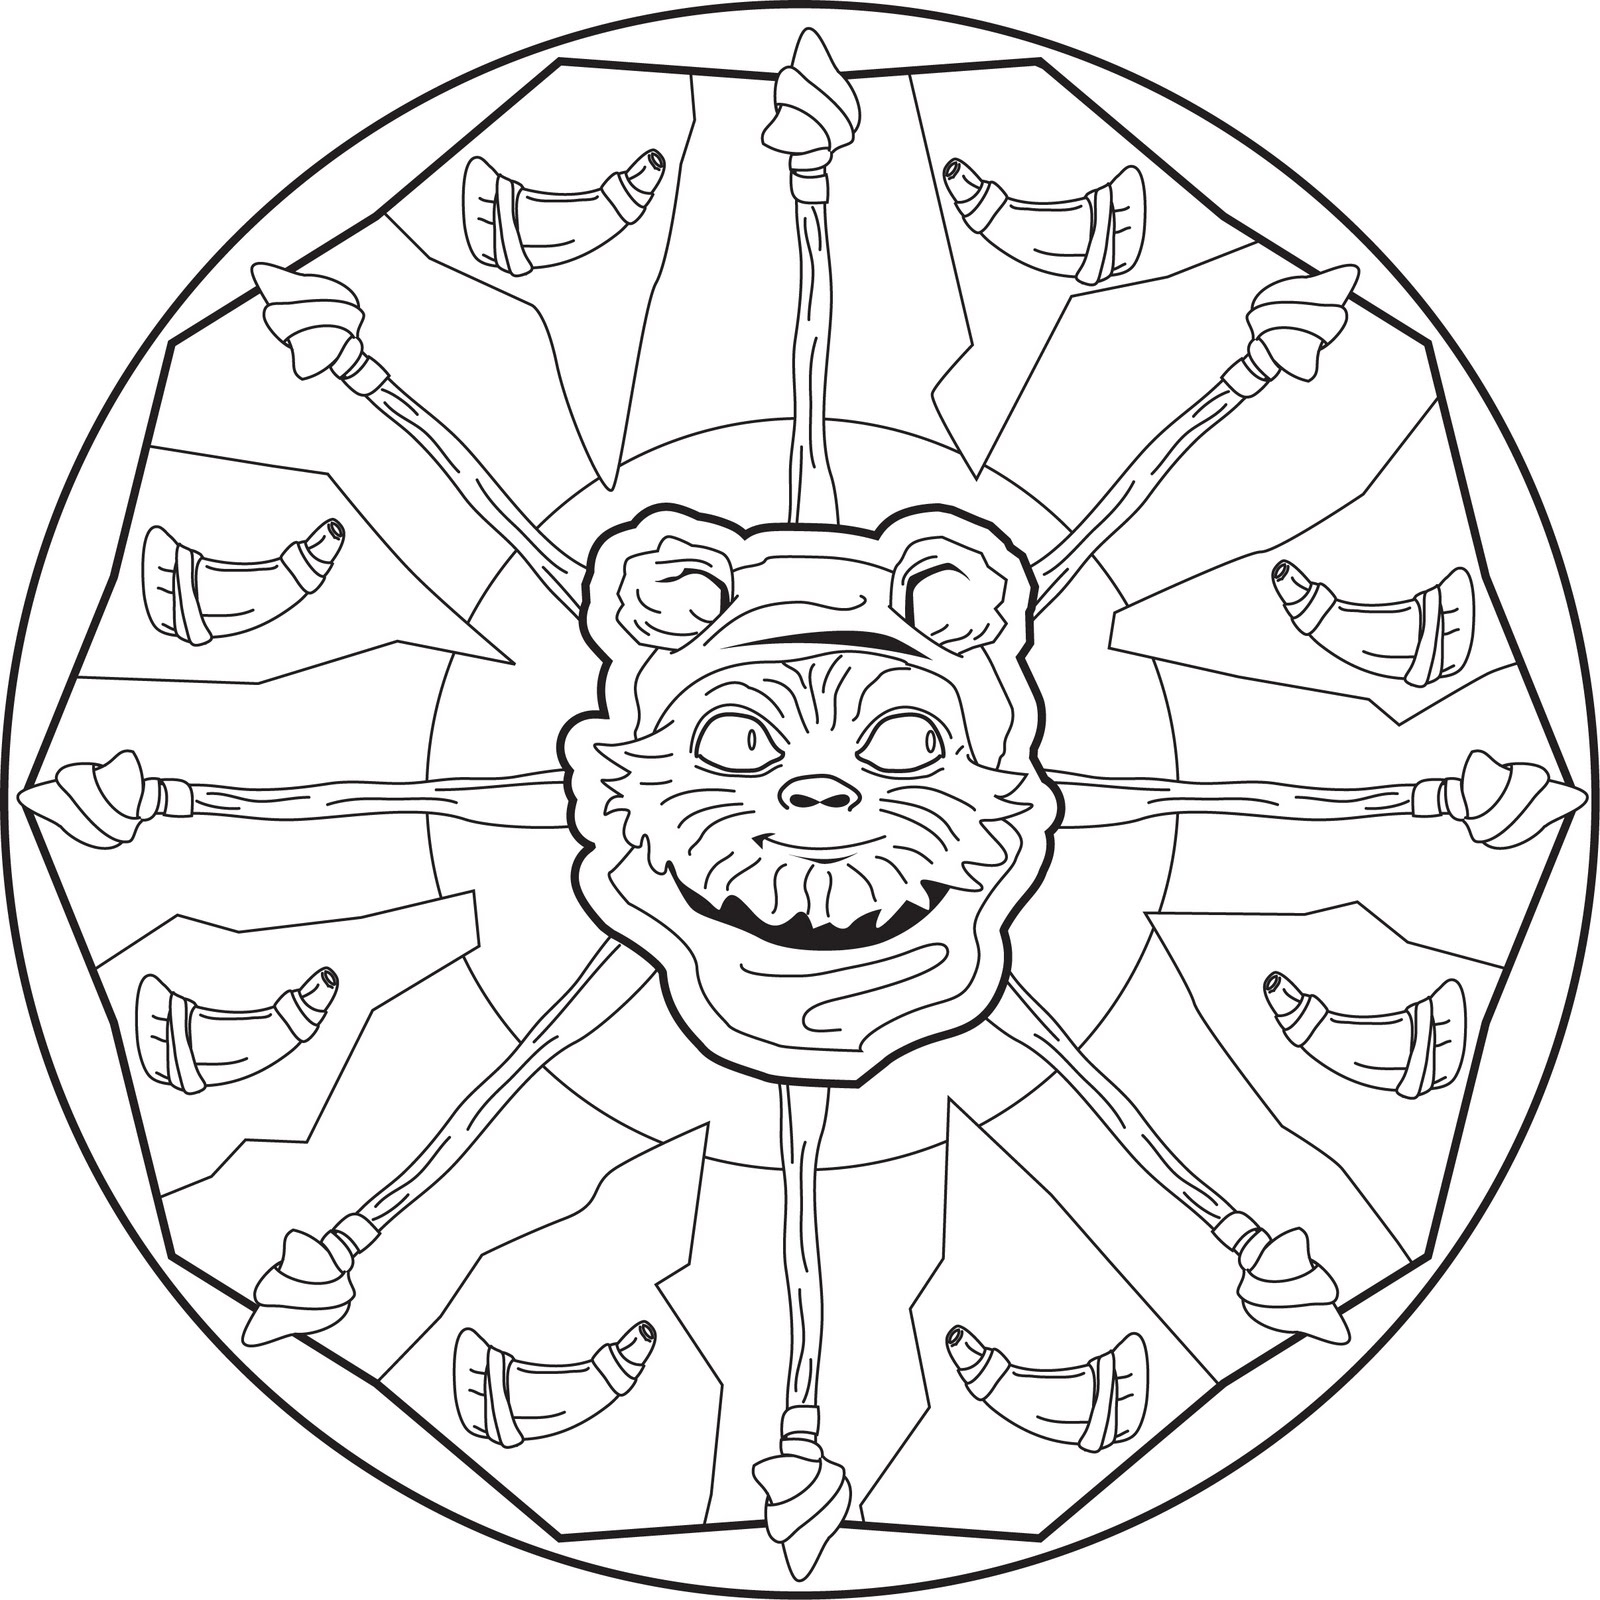 1600x1600 Ewok Coloring Page Leversetdujourfo Collection